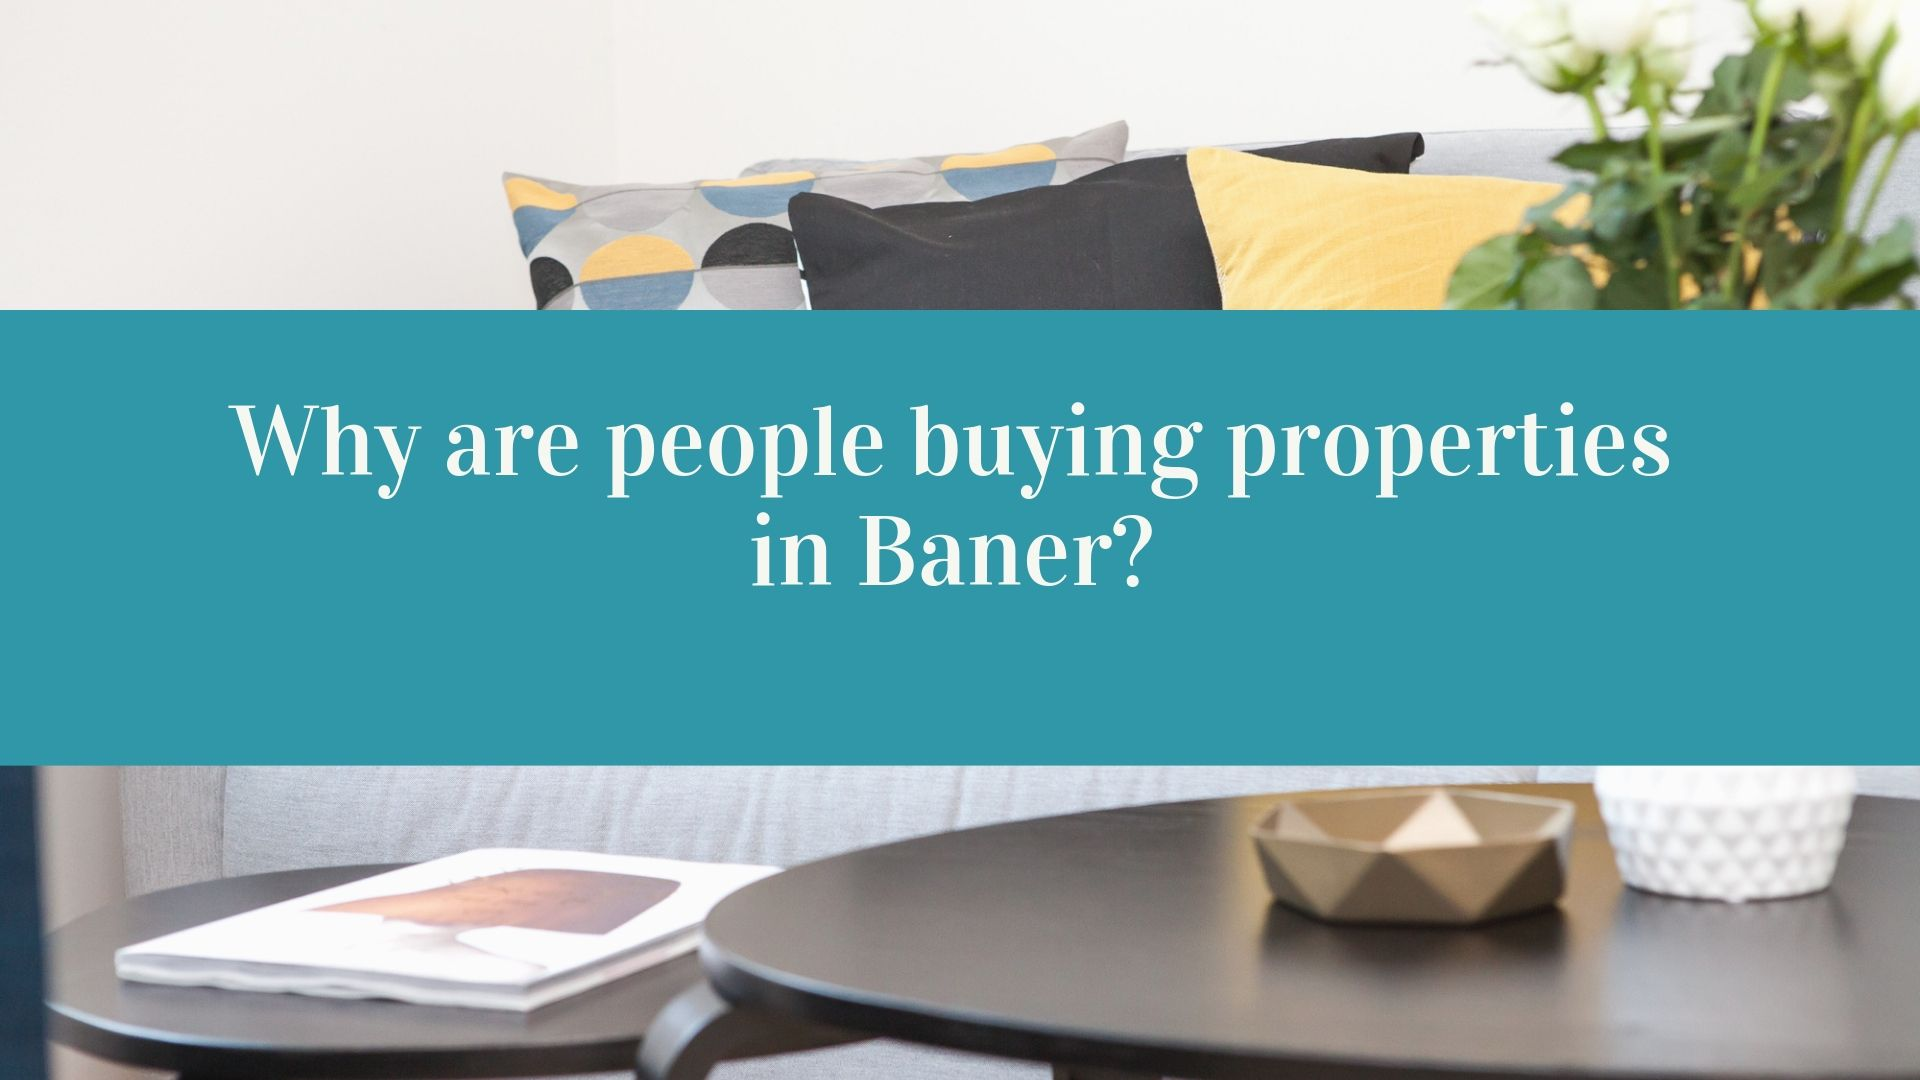 Why are people buying properties in Baner?